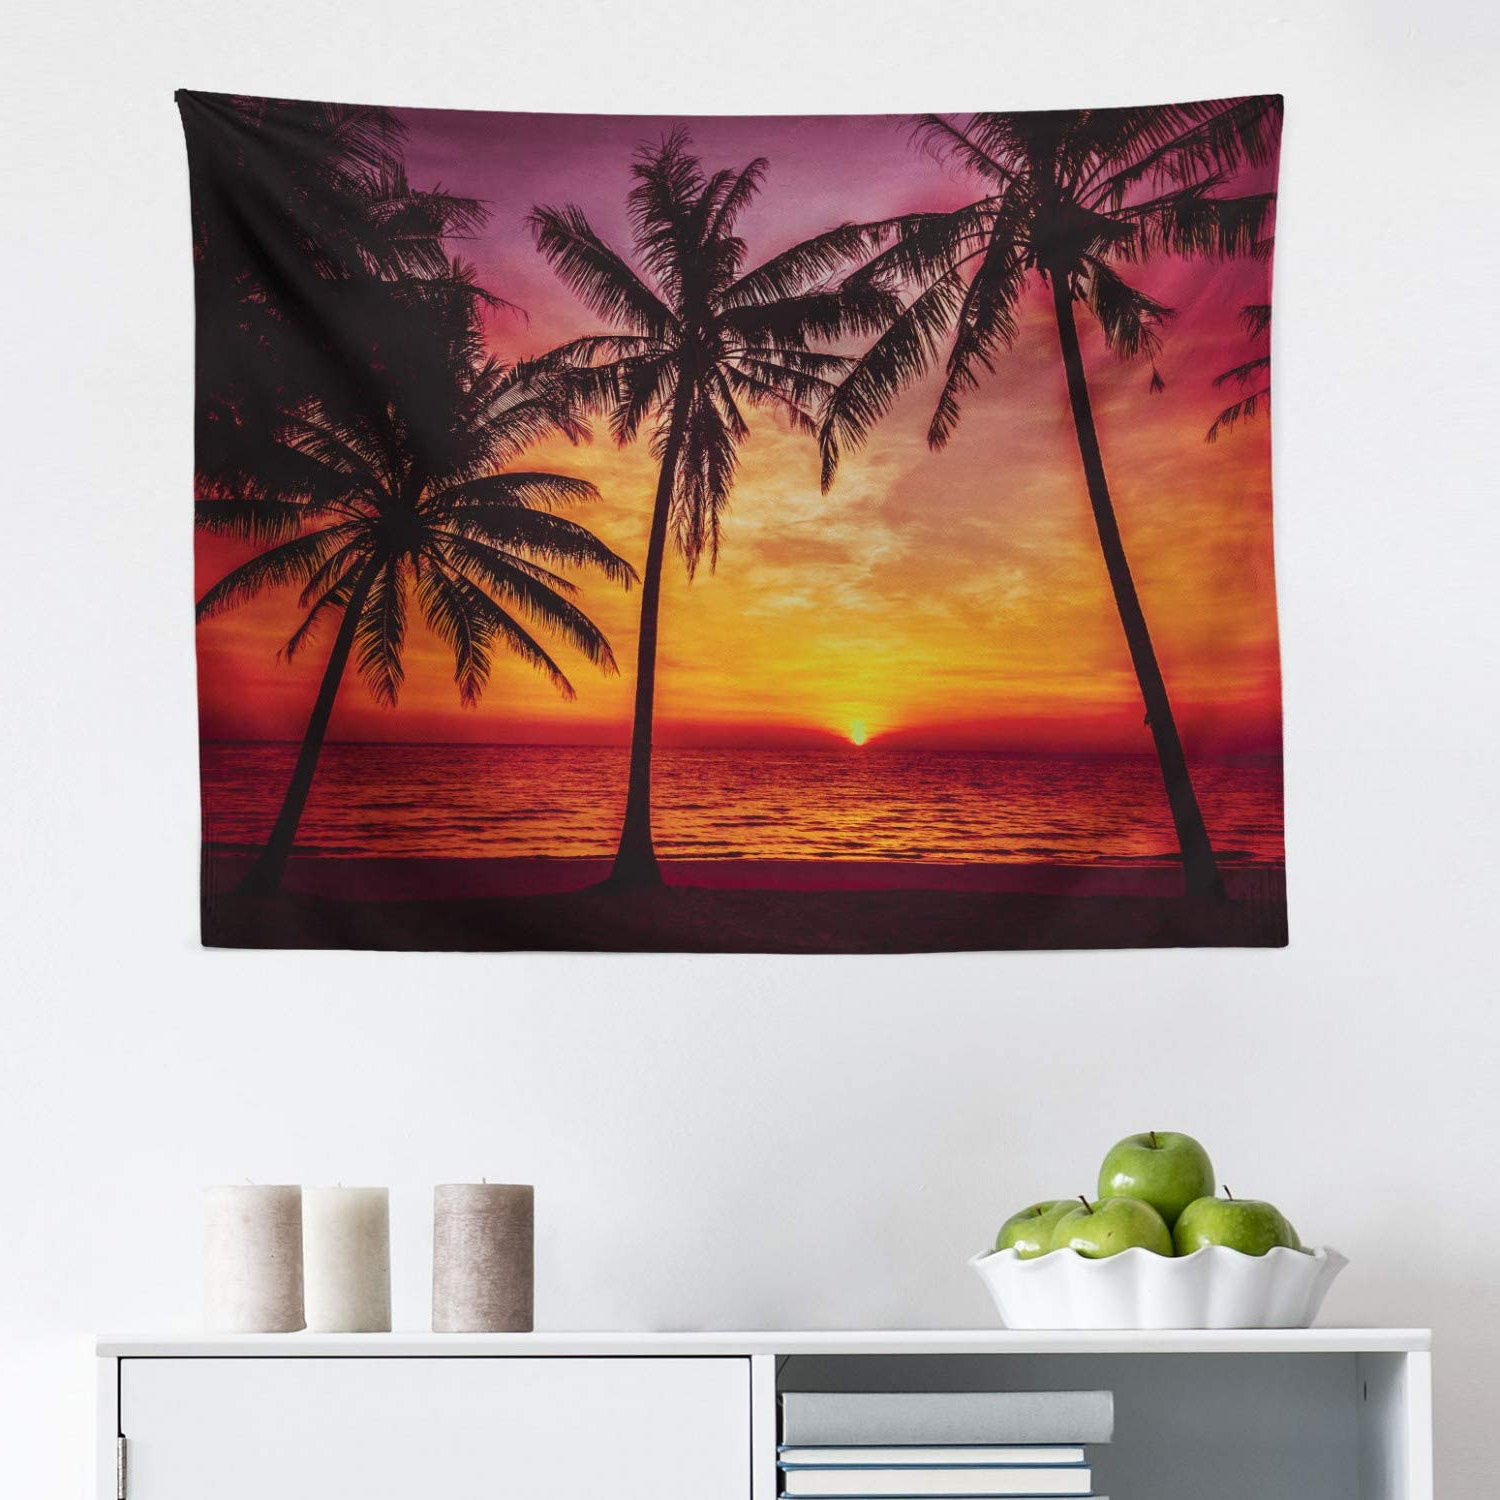 Lunarable Tropical Tapestry, Sunset Tropical Beach With Palm Trees Peaceful Ocean Evening View Resort, Fabric Wall Hanging Decor For Bedroom Living For Well Liked Blended Fabric Palm Tree Wall Hangings (View 17 of 20)